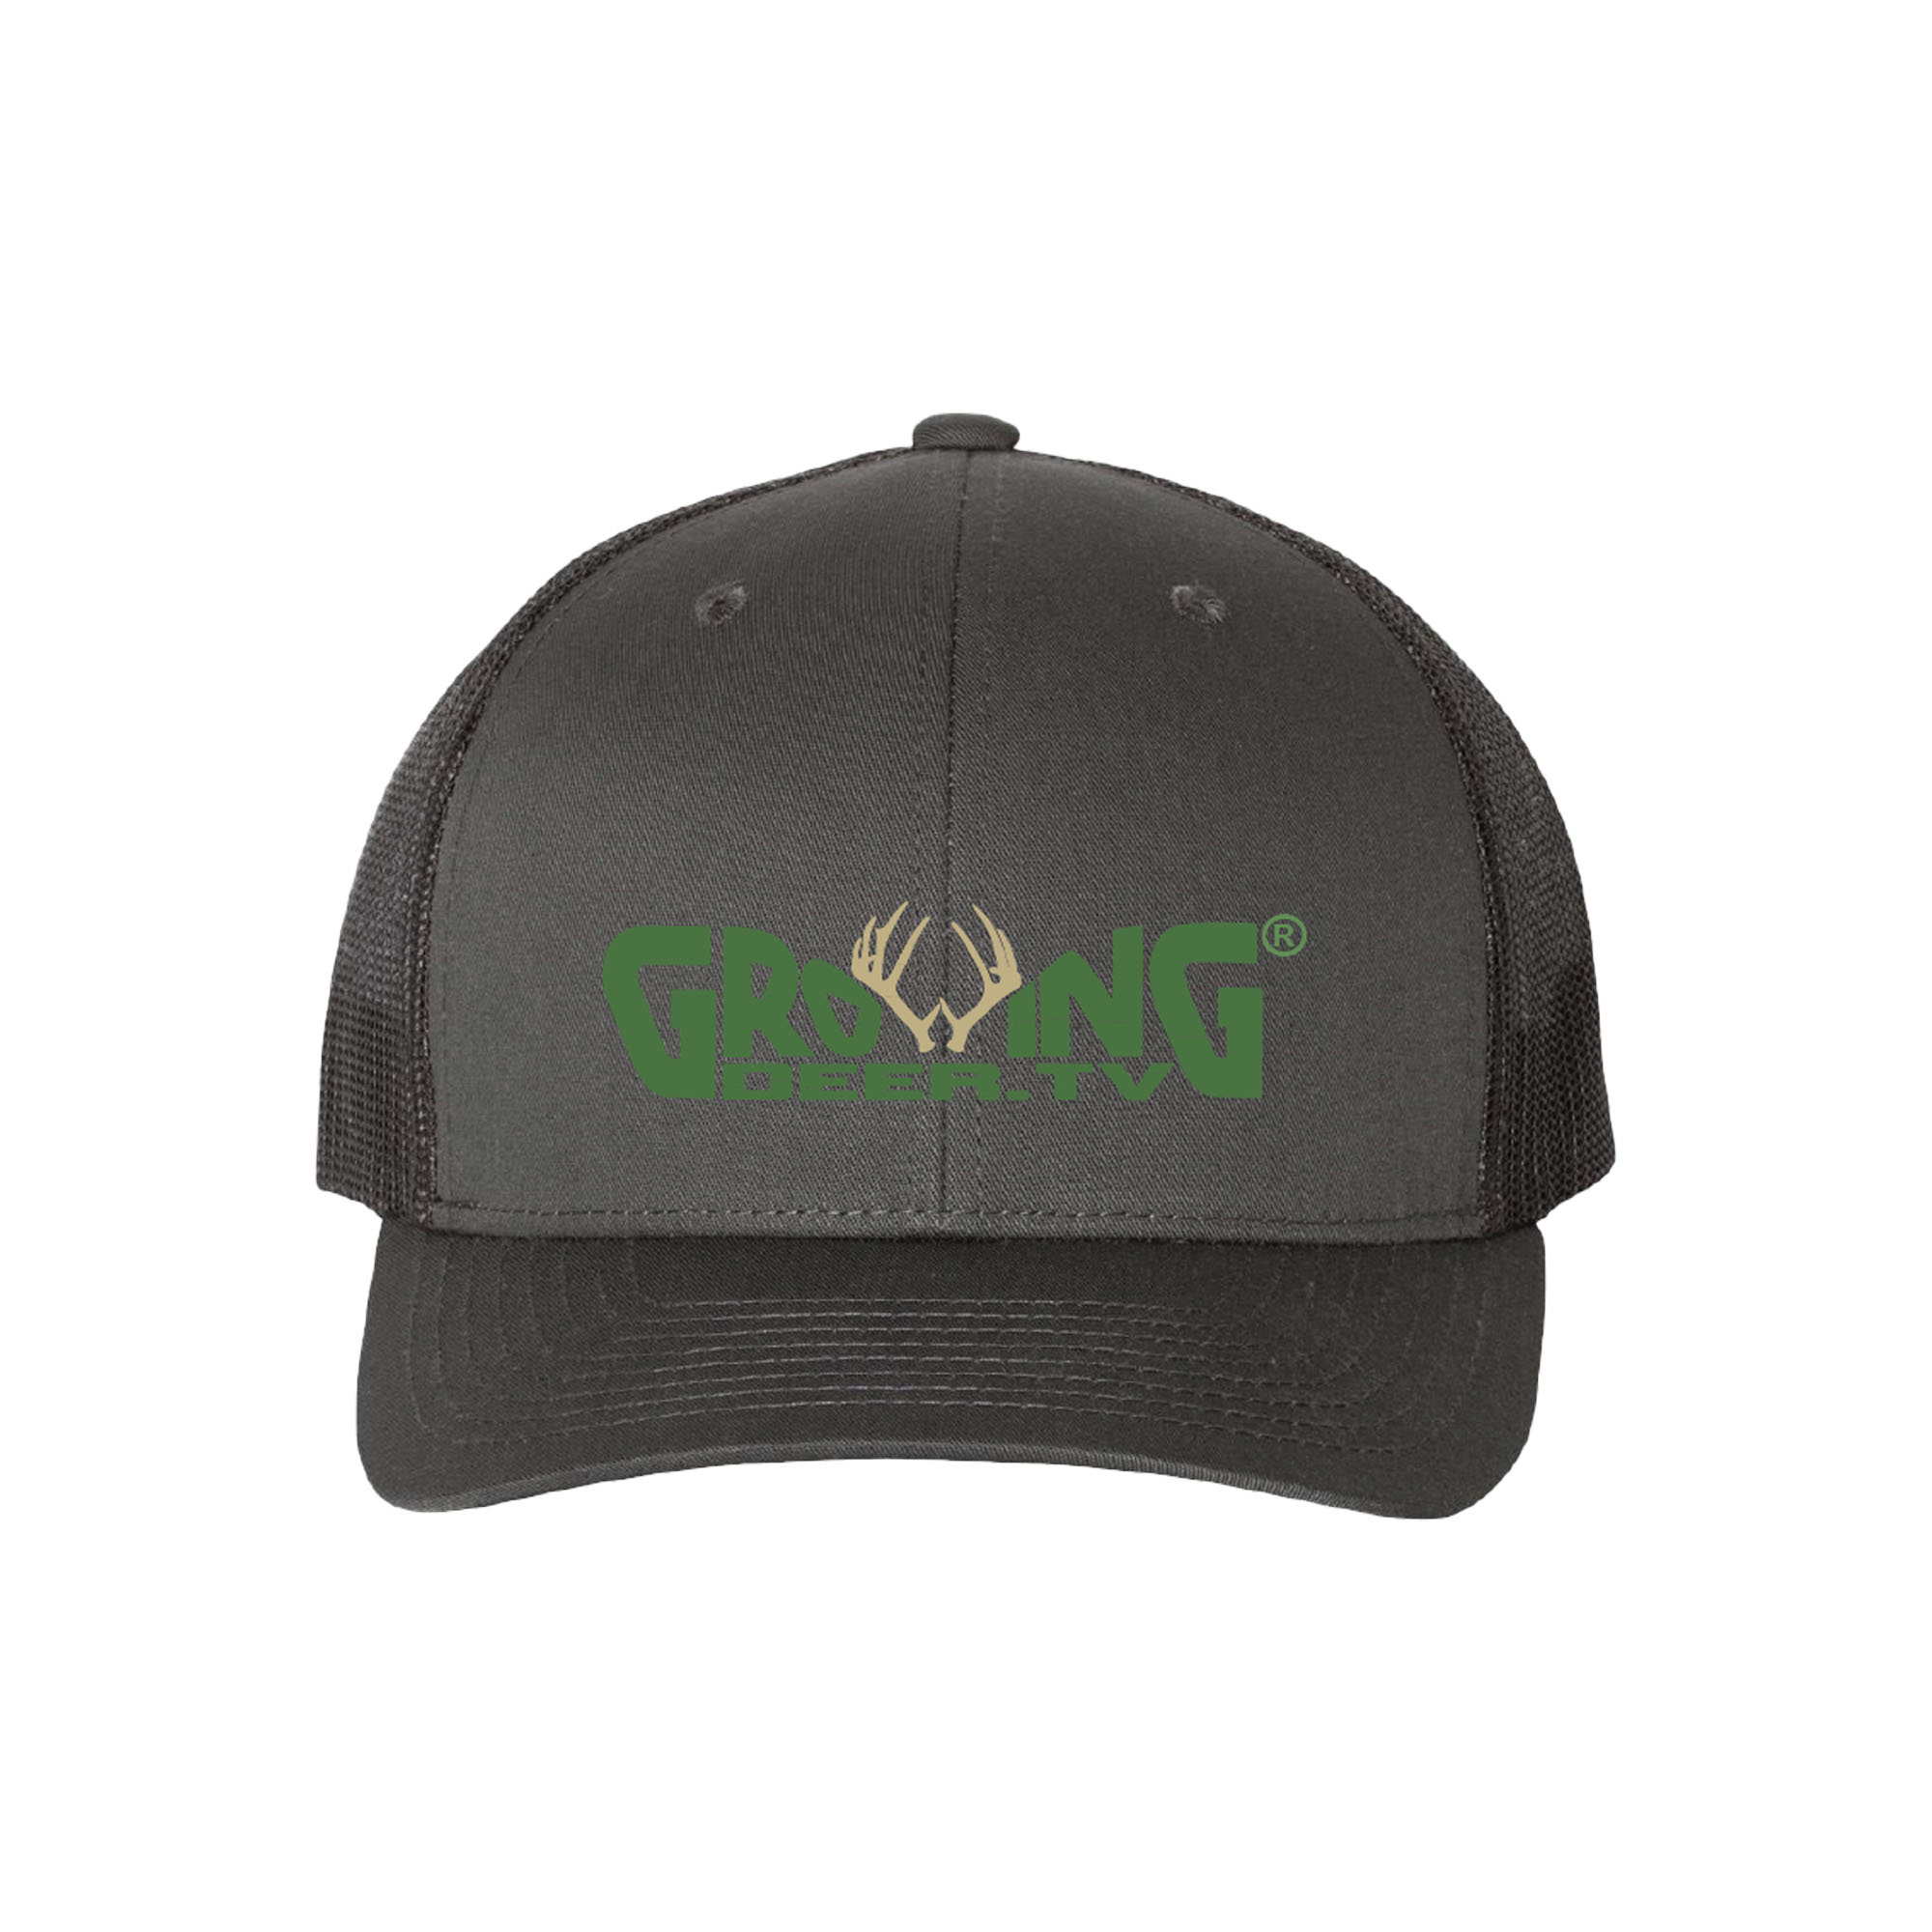 Charcoal Gray/Black, Structured, mid-profile, six-panel Retro Trucker Cap with Permacurv visor, matching undervisor, amesh back with a Snapback closure. Made with 65/35 polyester/ cotton.